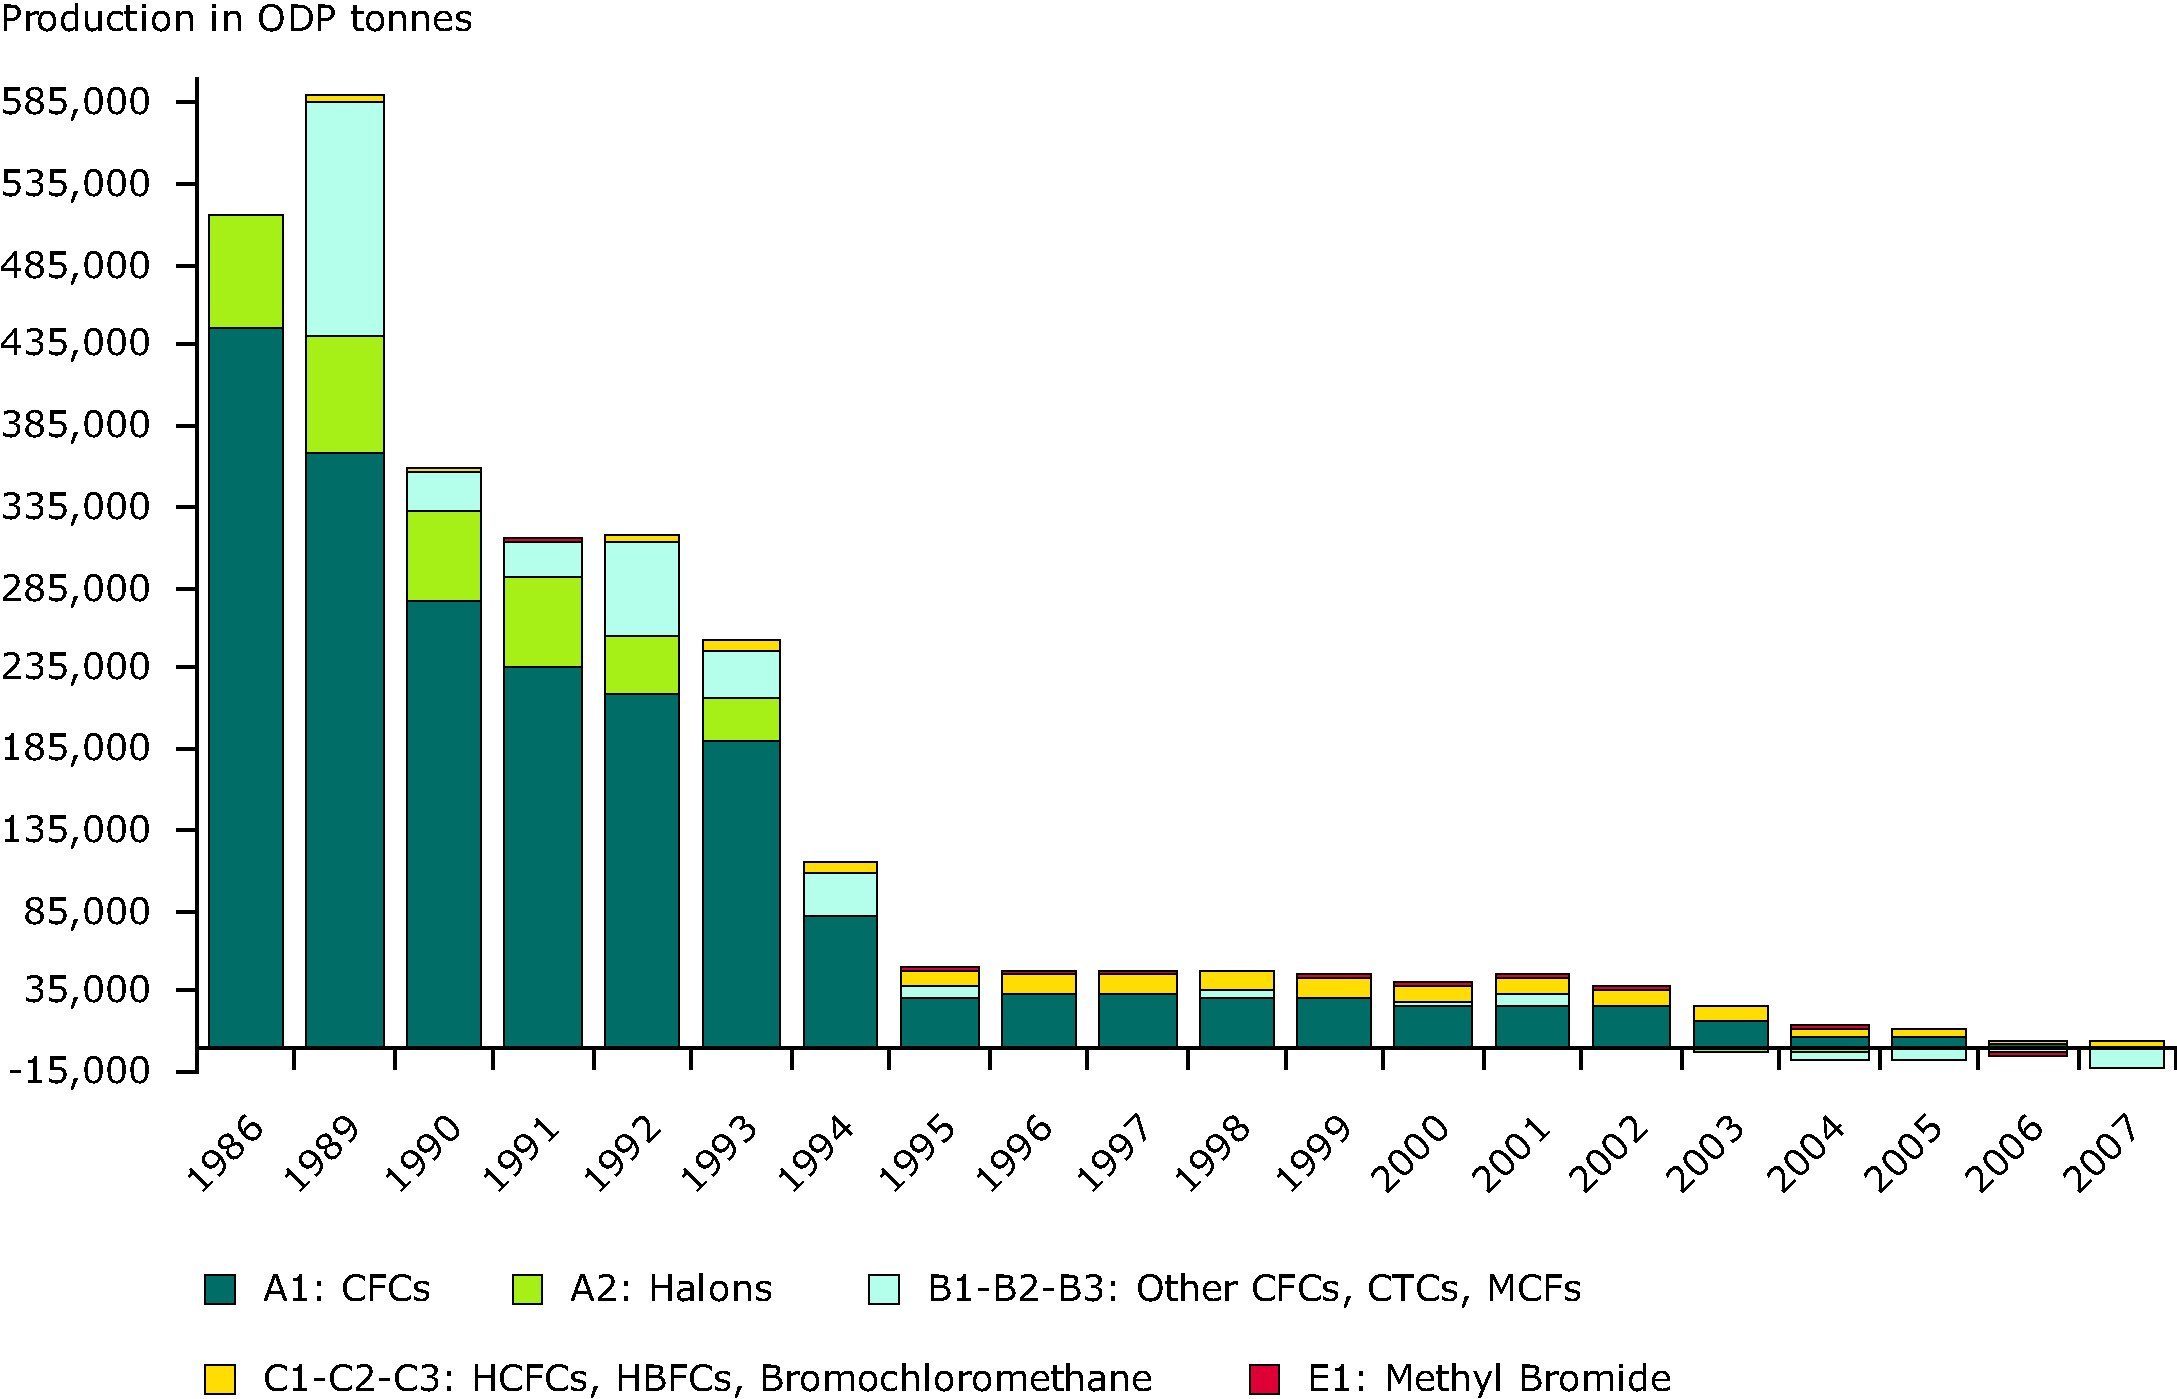 Production of ozone depleting substances in EEA member countries, 1986-2007